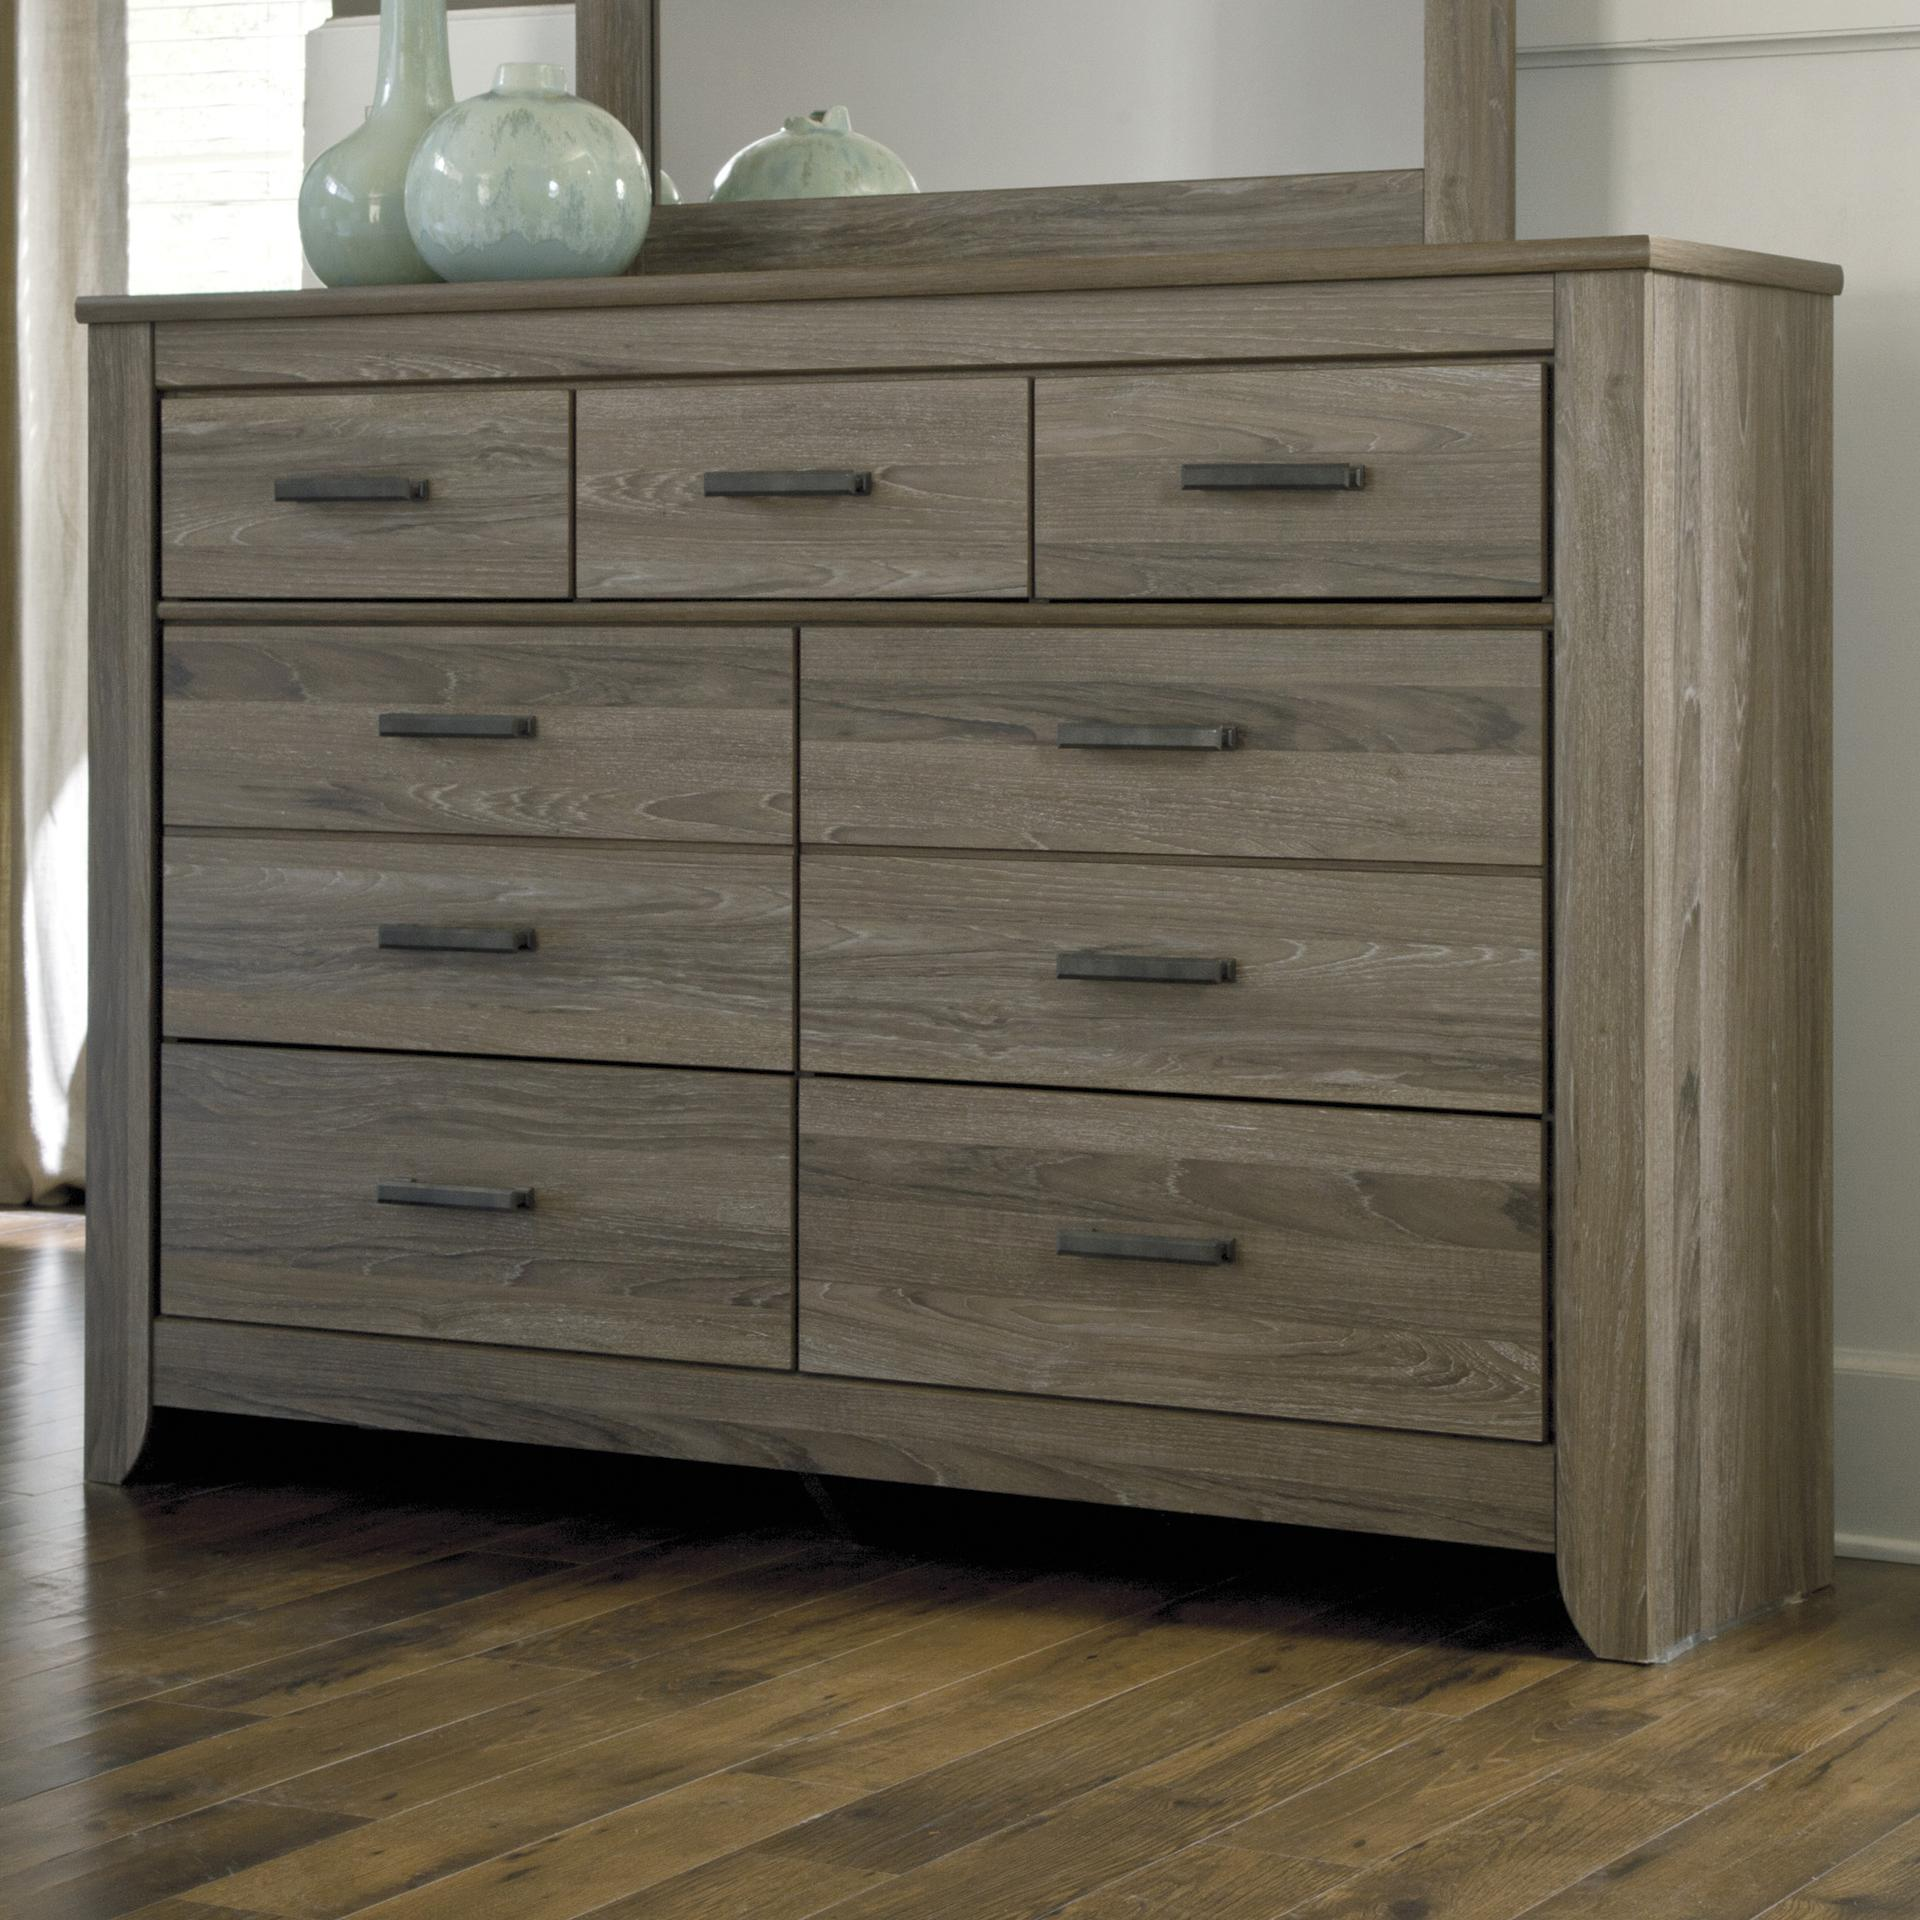 signature design by ashley zelen b248 31 rustic tall dresser with 7 drawers del sol furniture. Black Bedroom Furniture Sets. Home Design Ideas